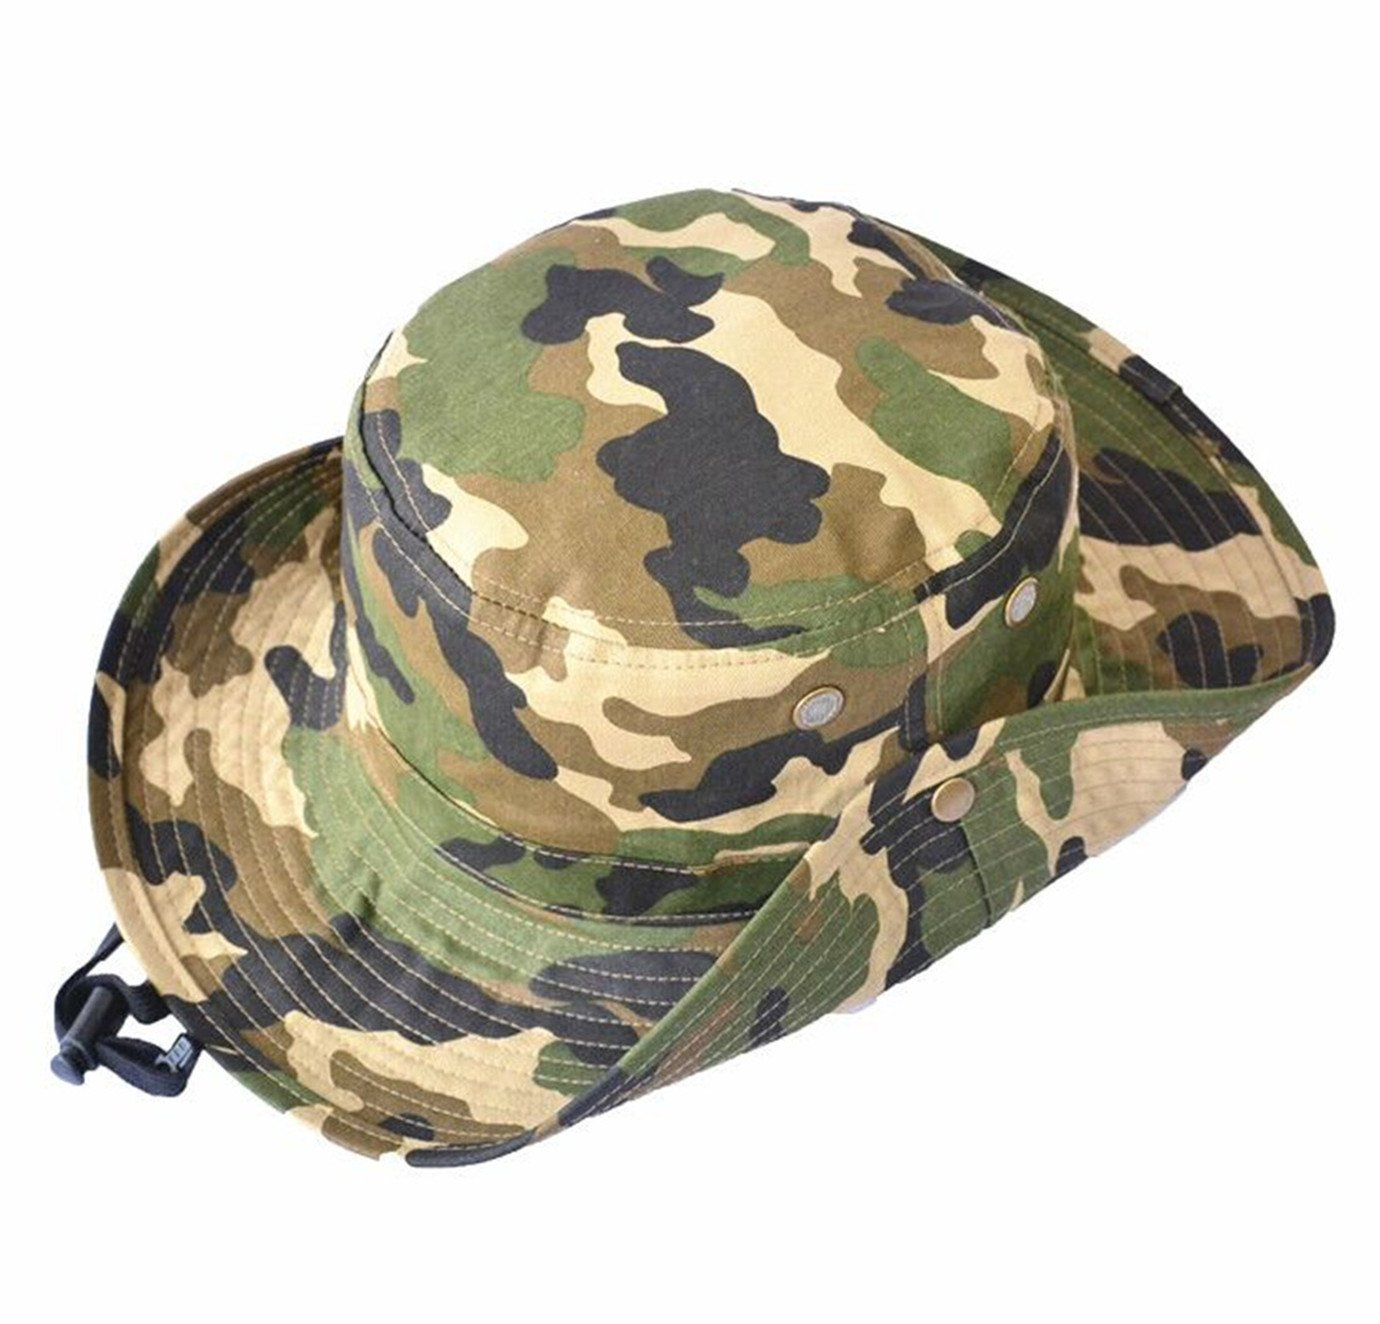 910ab6f41f259 Mens Bucket Hat Boy Camouflage Hat Alpine Cap Cotton Sun Protection Fishman  Hat with Drawstring Strap Over 14 Year Green